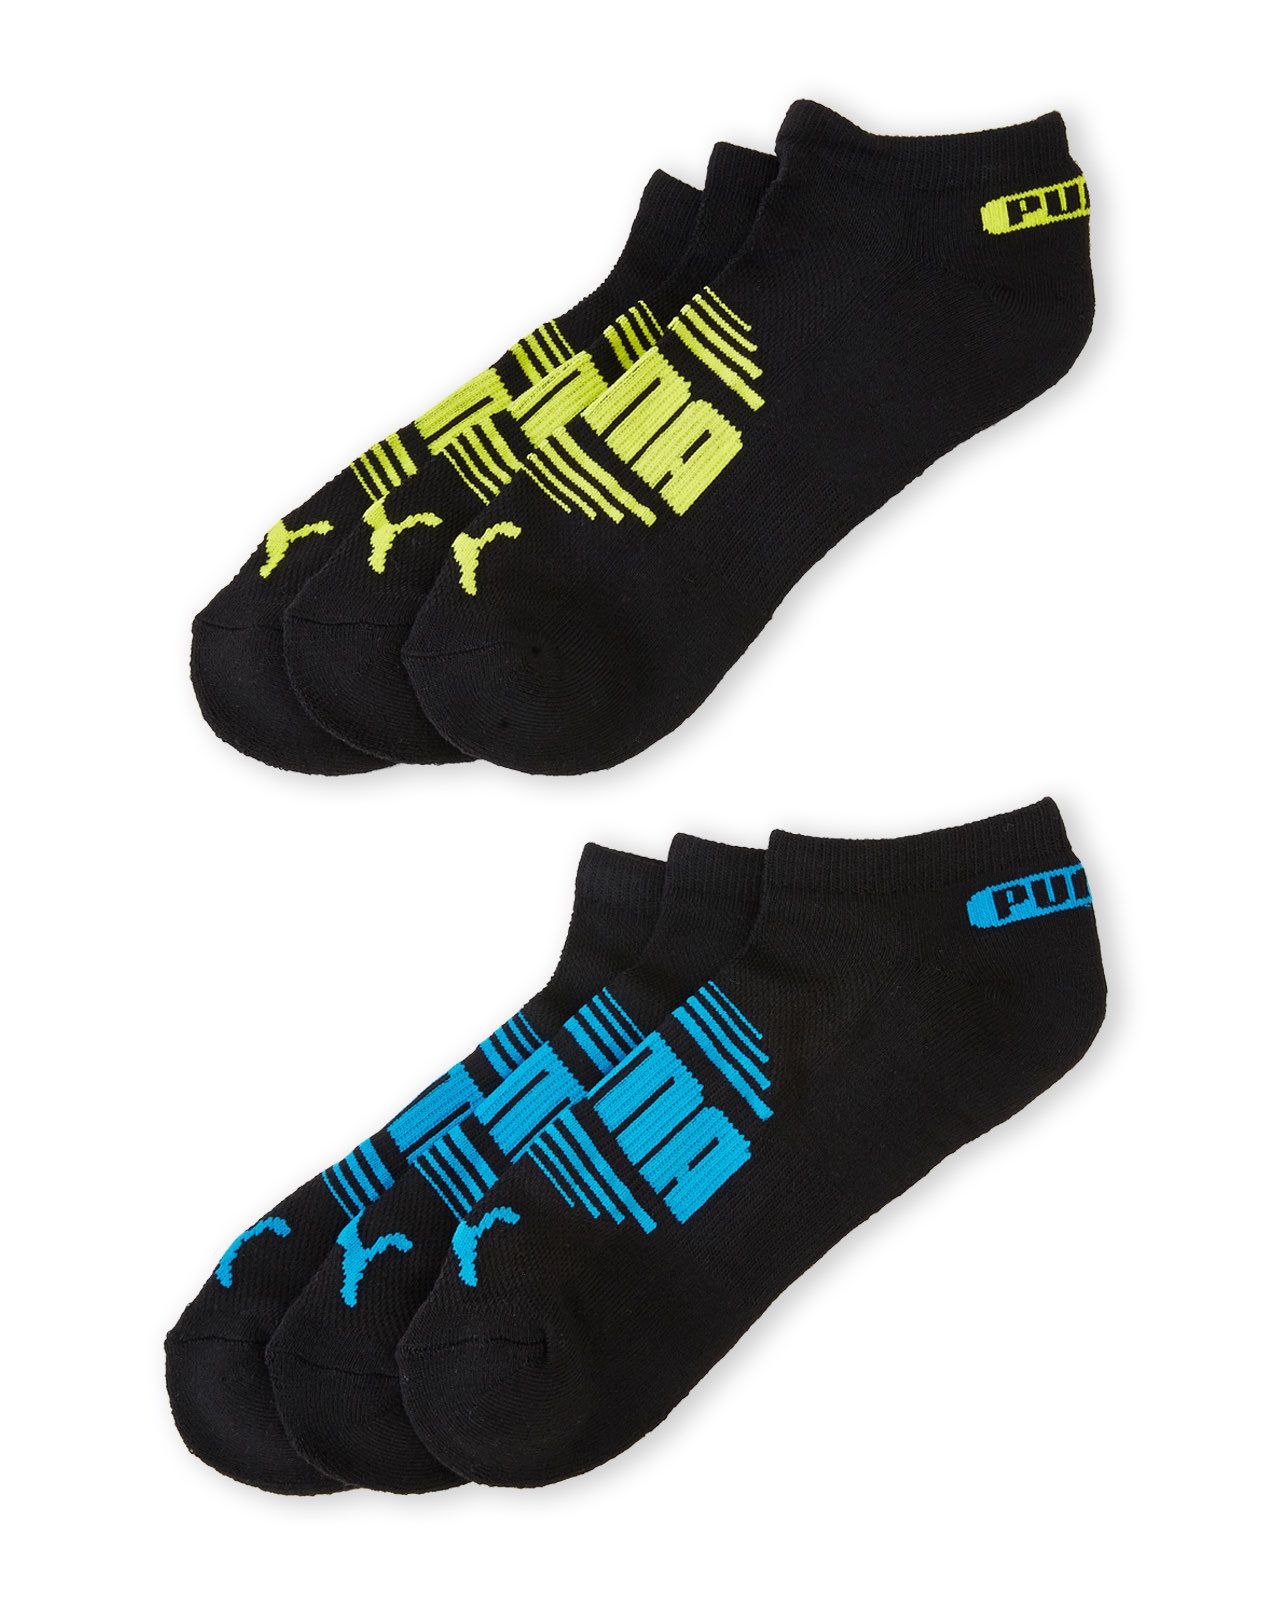 06d0b57c8 PUMA 6-Pack Low Cut Terry Ankle Socks in Black for Men - Lyst